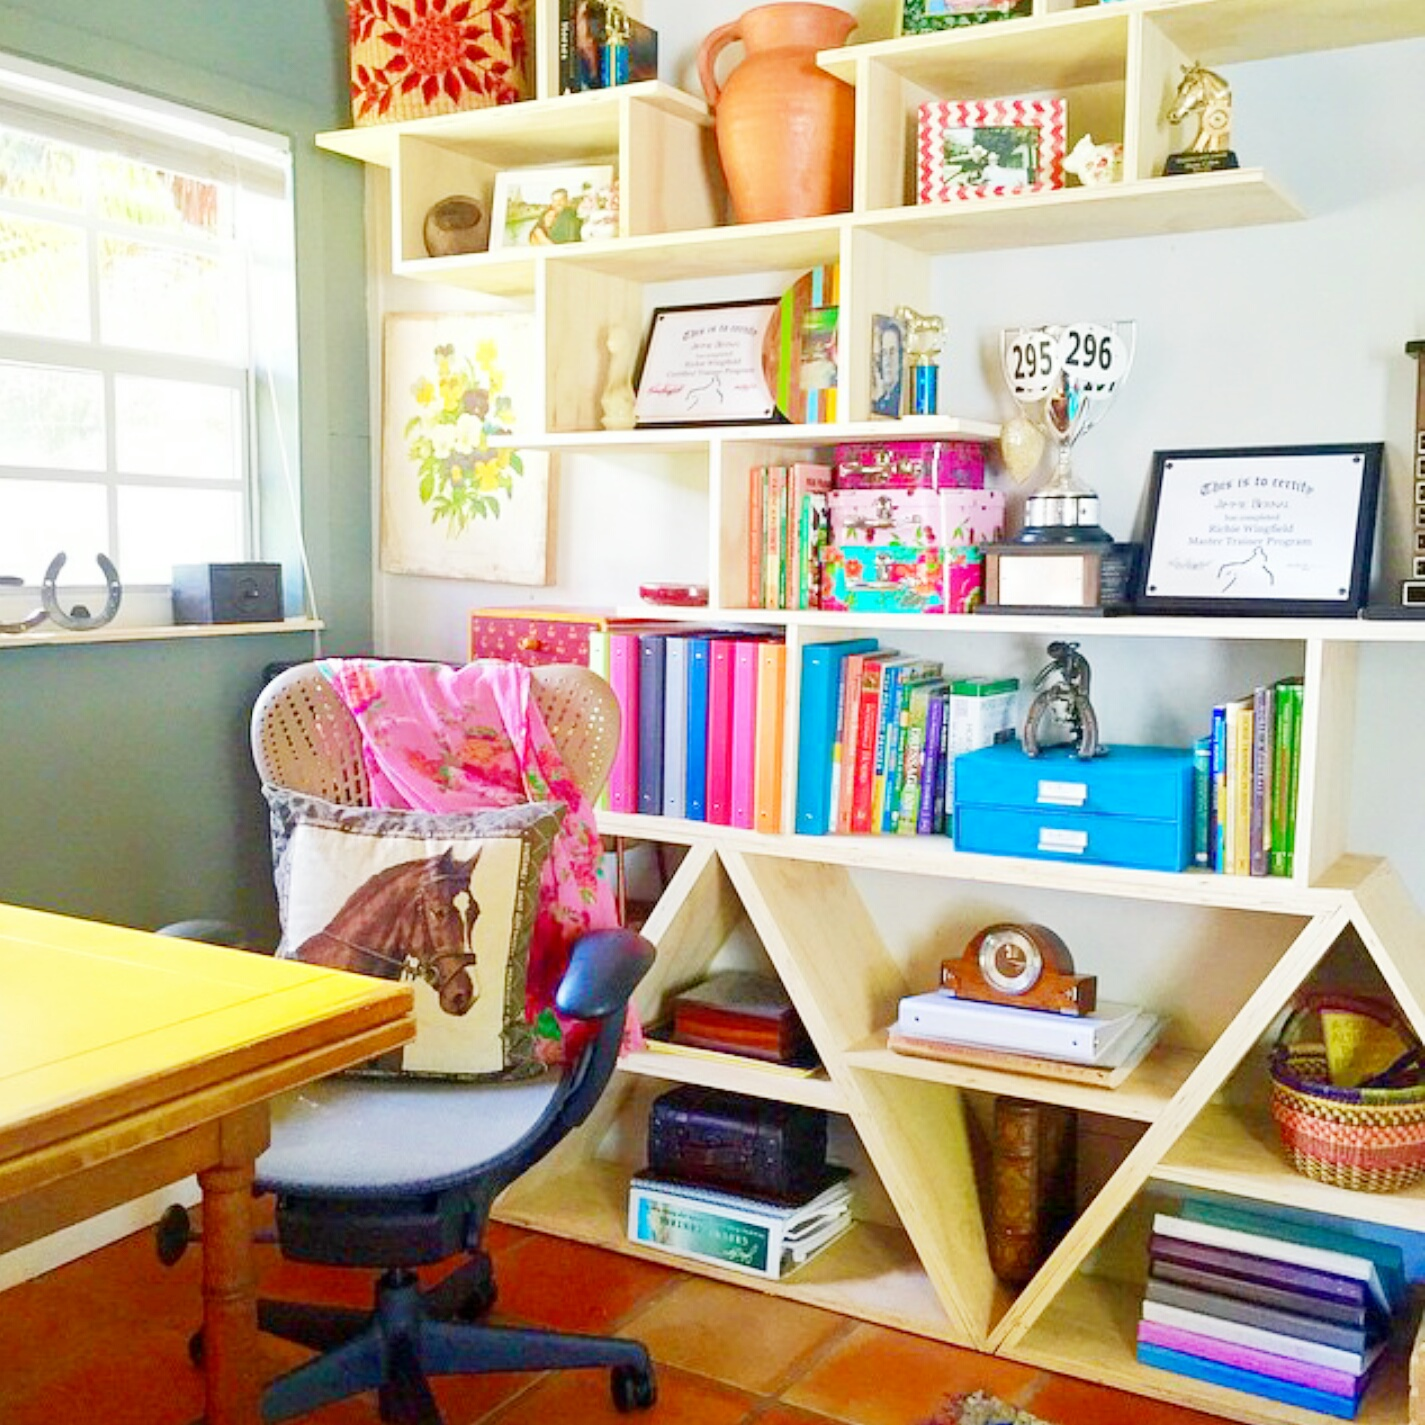 Geometric Barn Office Shelving // Painted Sofa // Custom Artwork